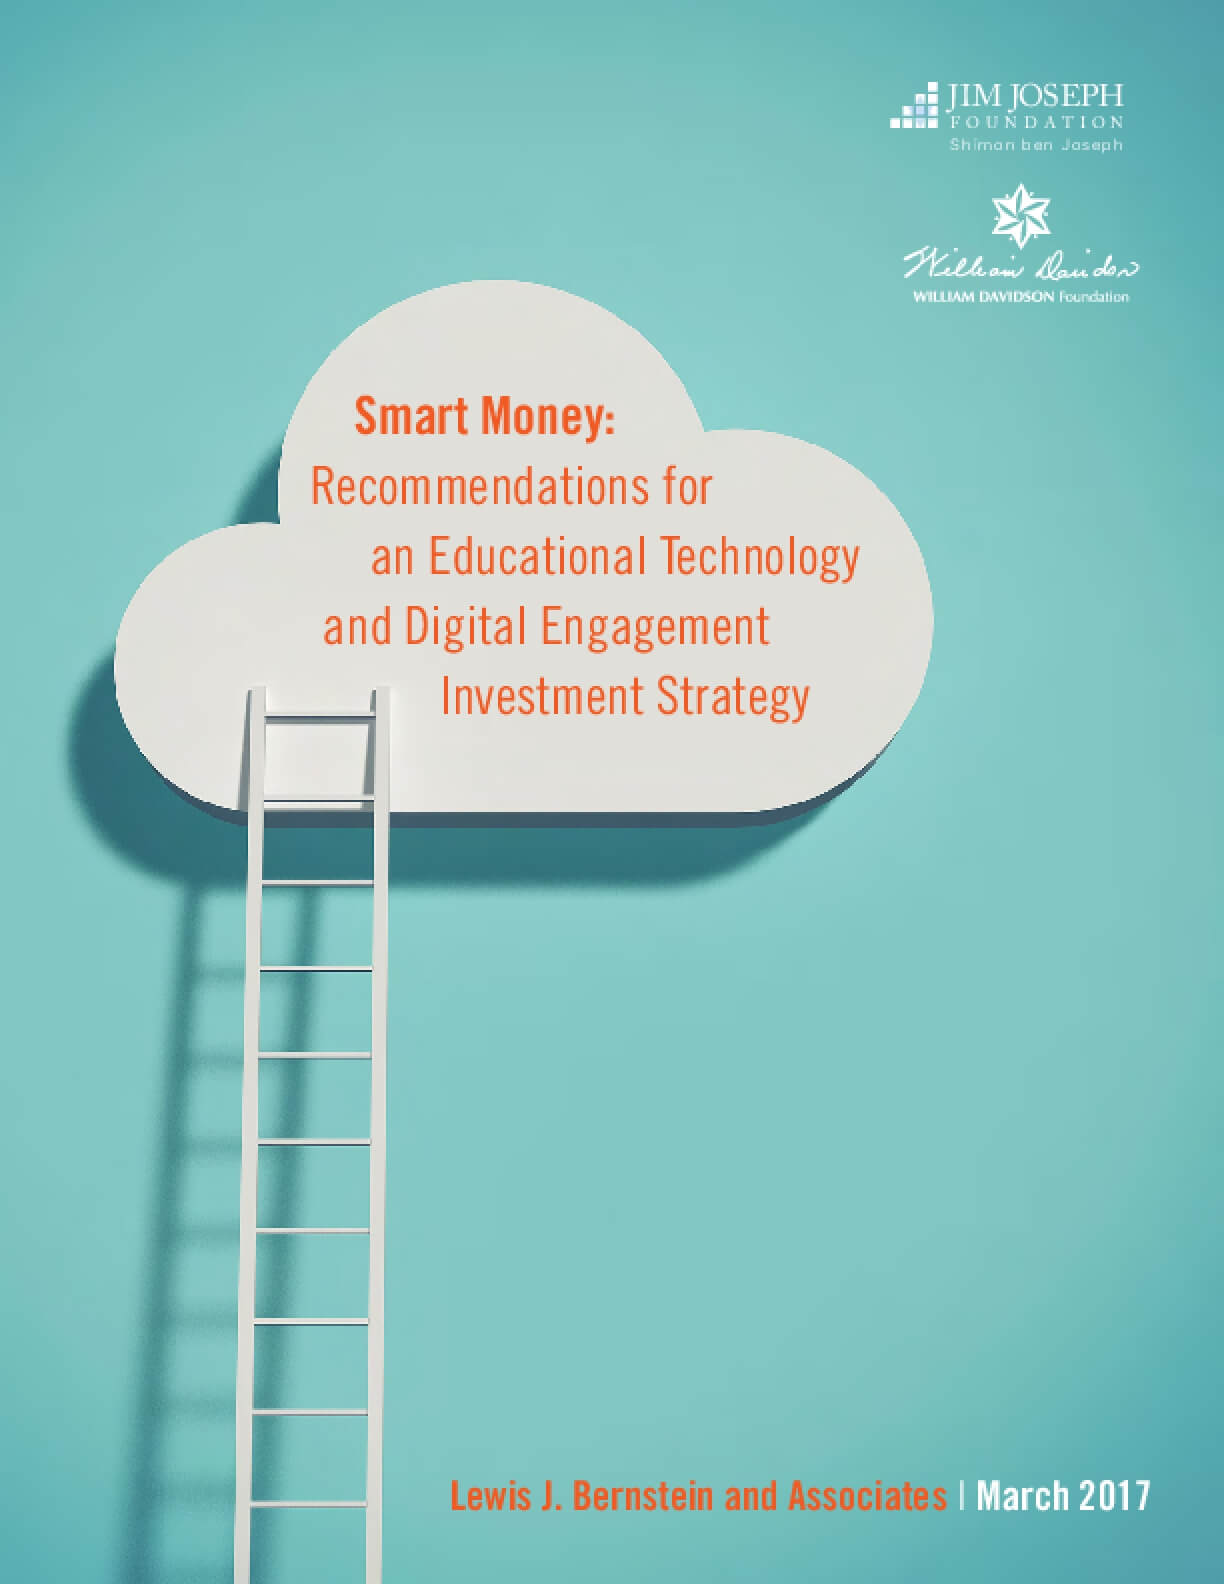 Smart Money: Recommendations for an Educational Technology and Digital Engagement Investment Strategy